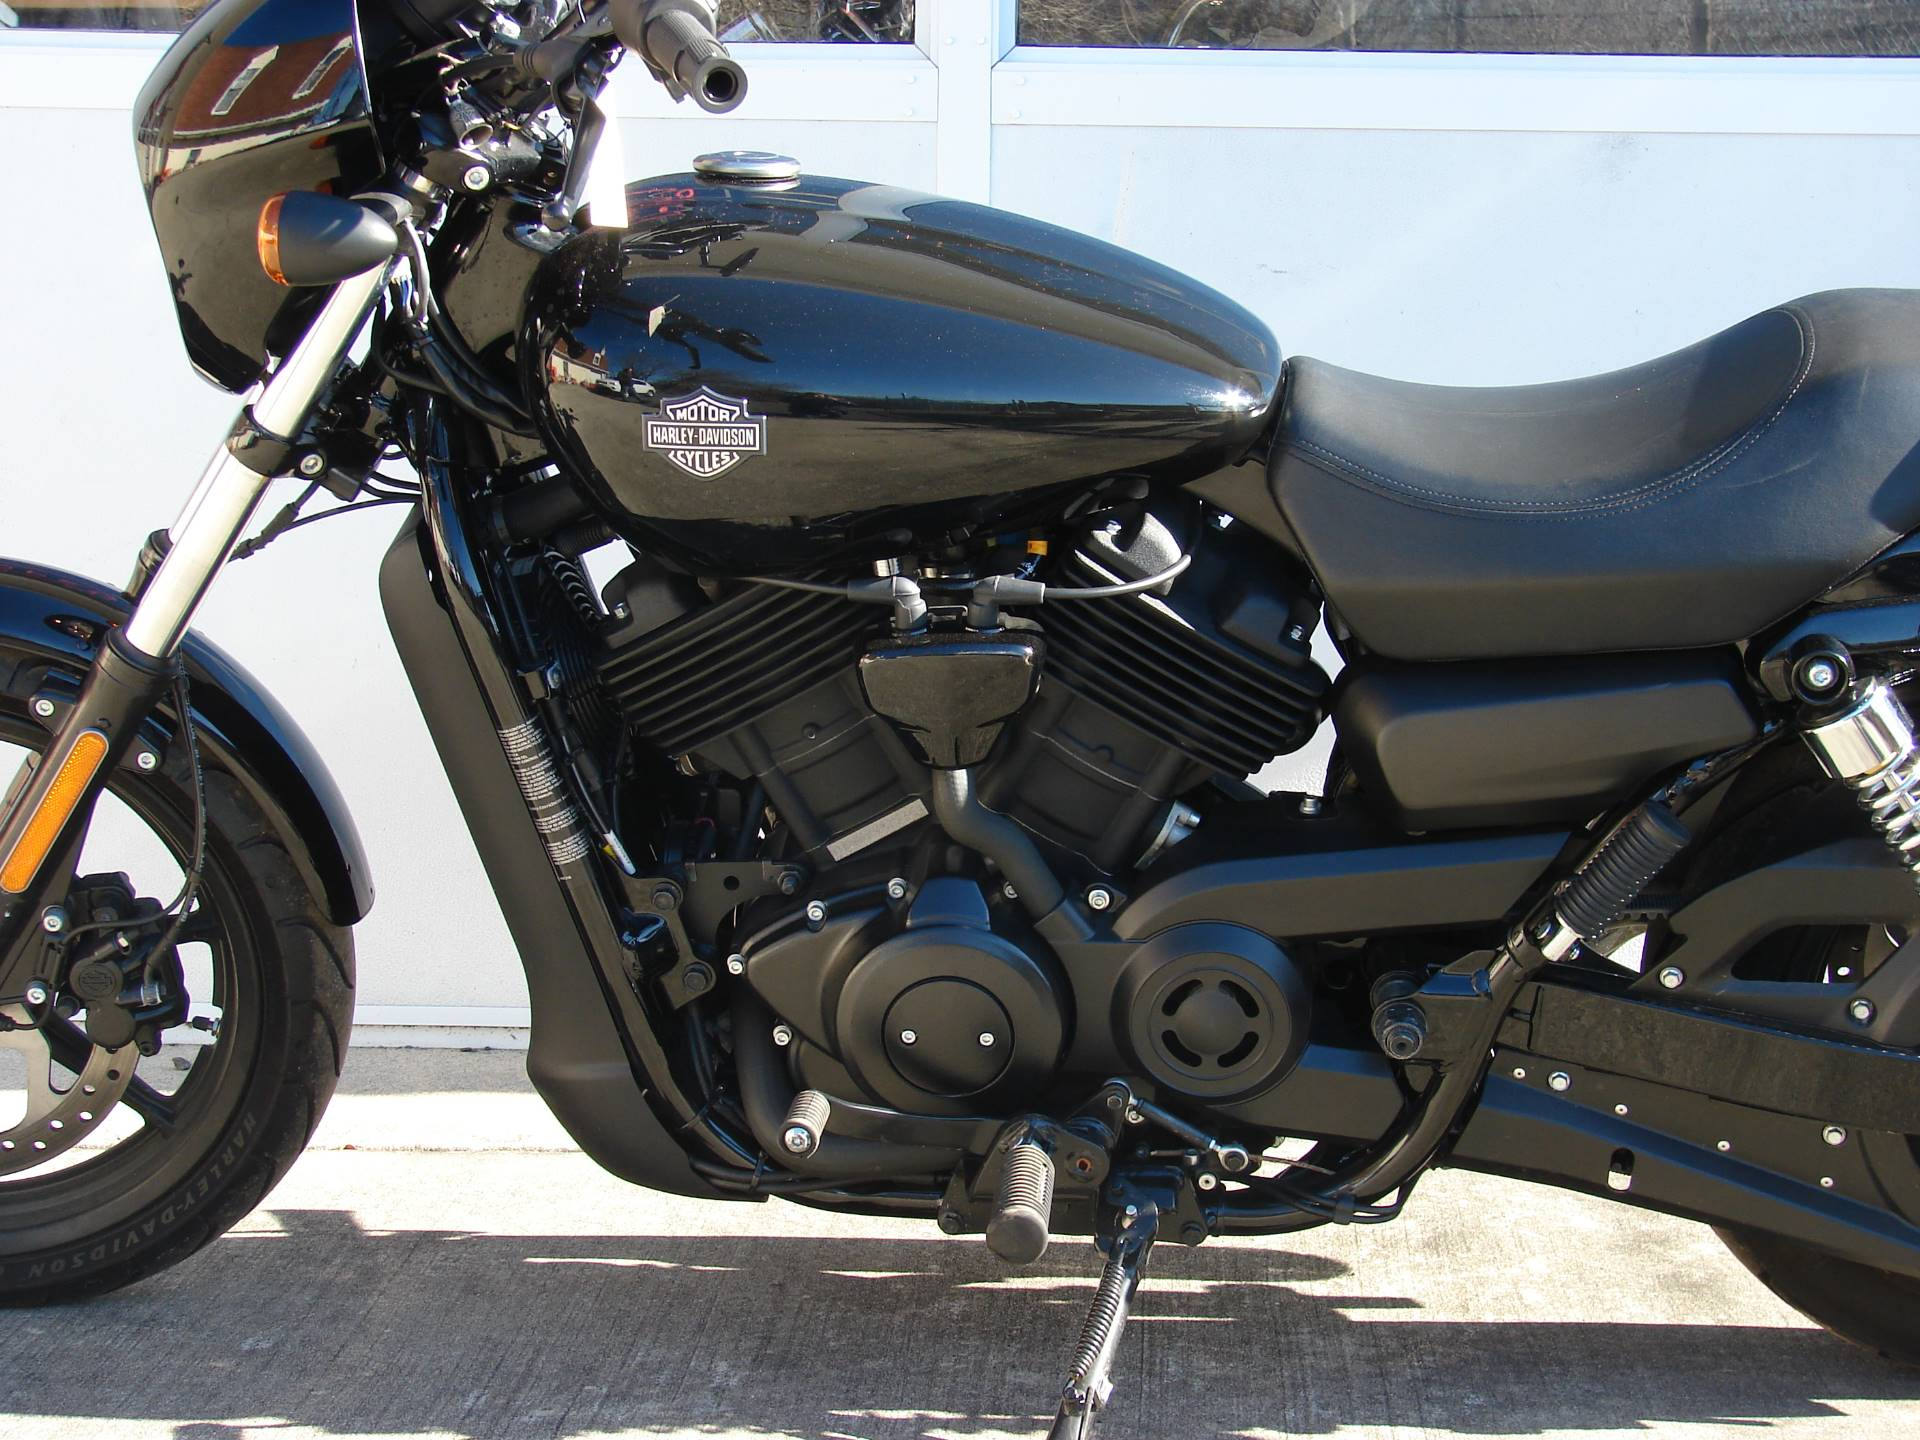 2017 Harley-Davidson XG500 Street Motorcycle in Williamstown, New Jersey - Photo 5